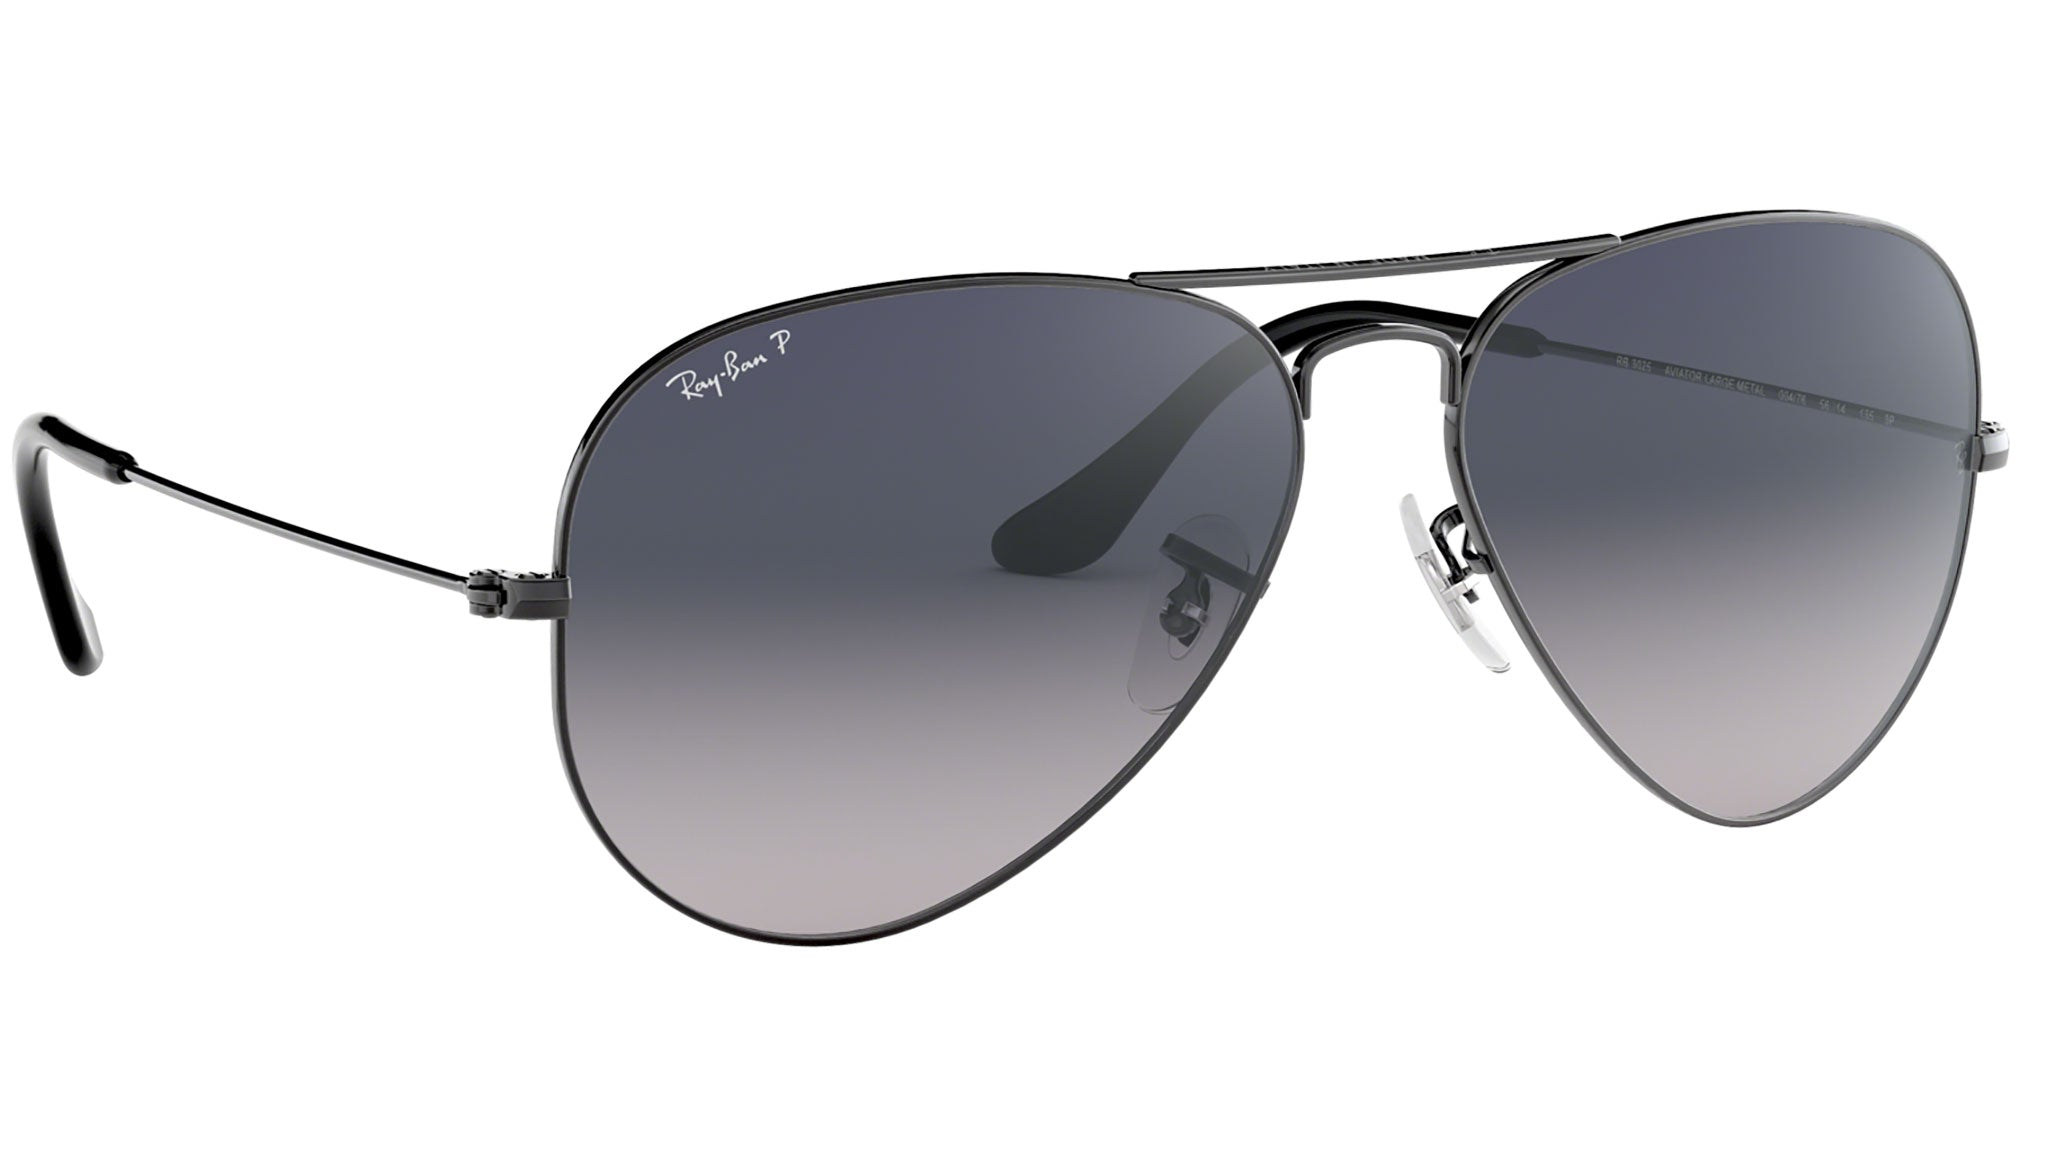 Aviator Gradient RB3025 polished gunmetal